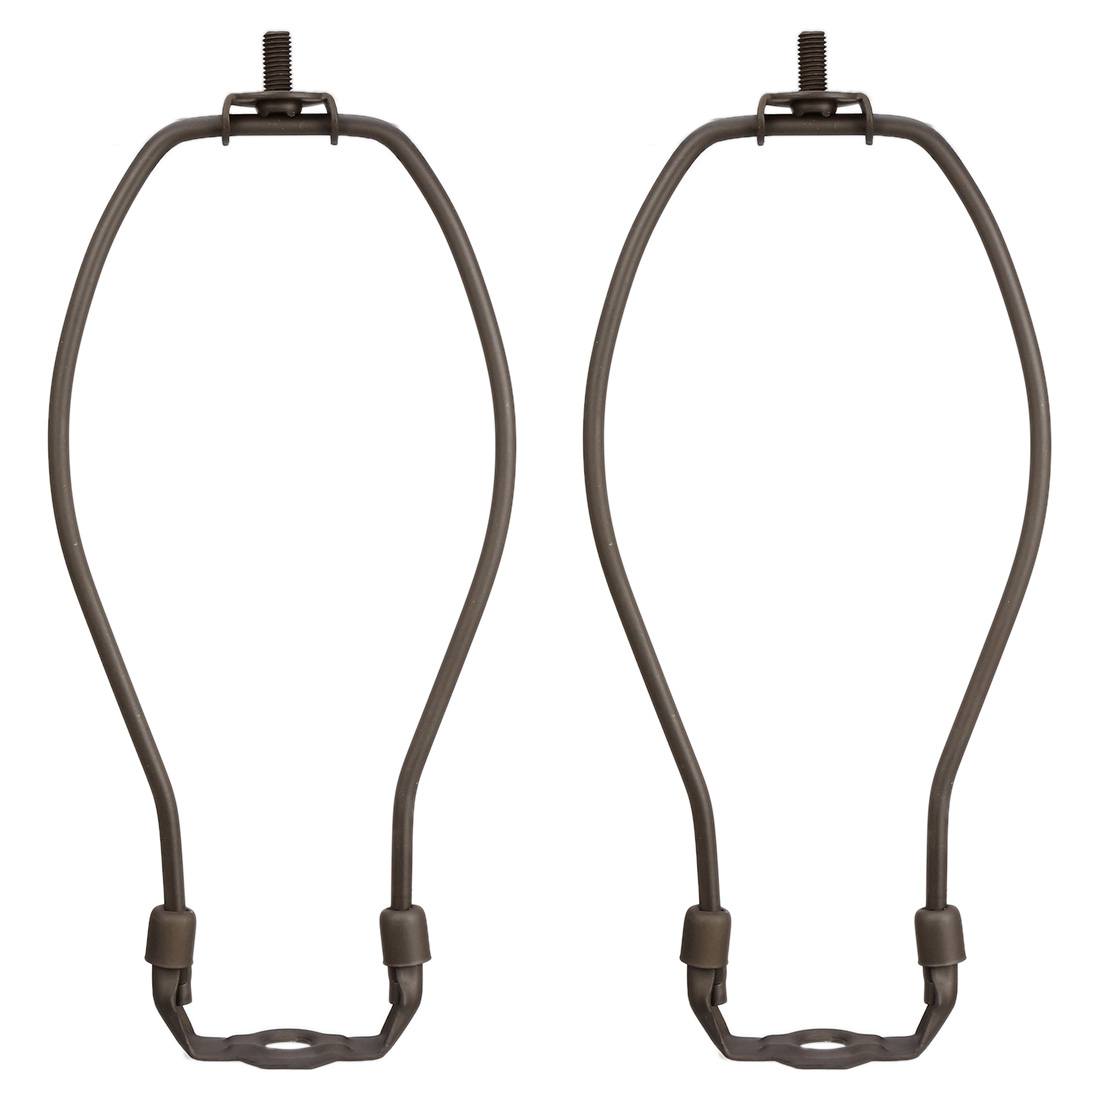 Uxcell Uxcell High Quality 1-2 Pcs Lamp Harp Holder Bronze 6 Inch Height Chocolate For Table And Floor Lamps Non Screws